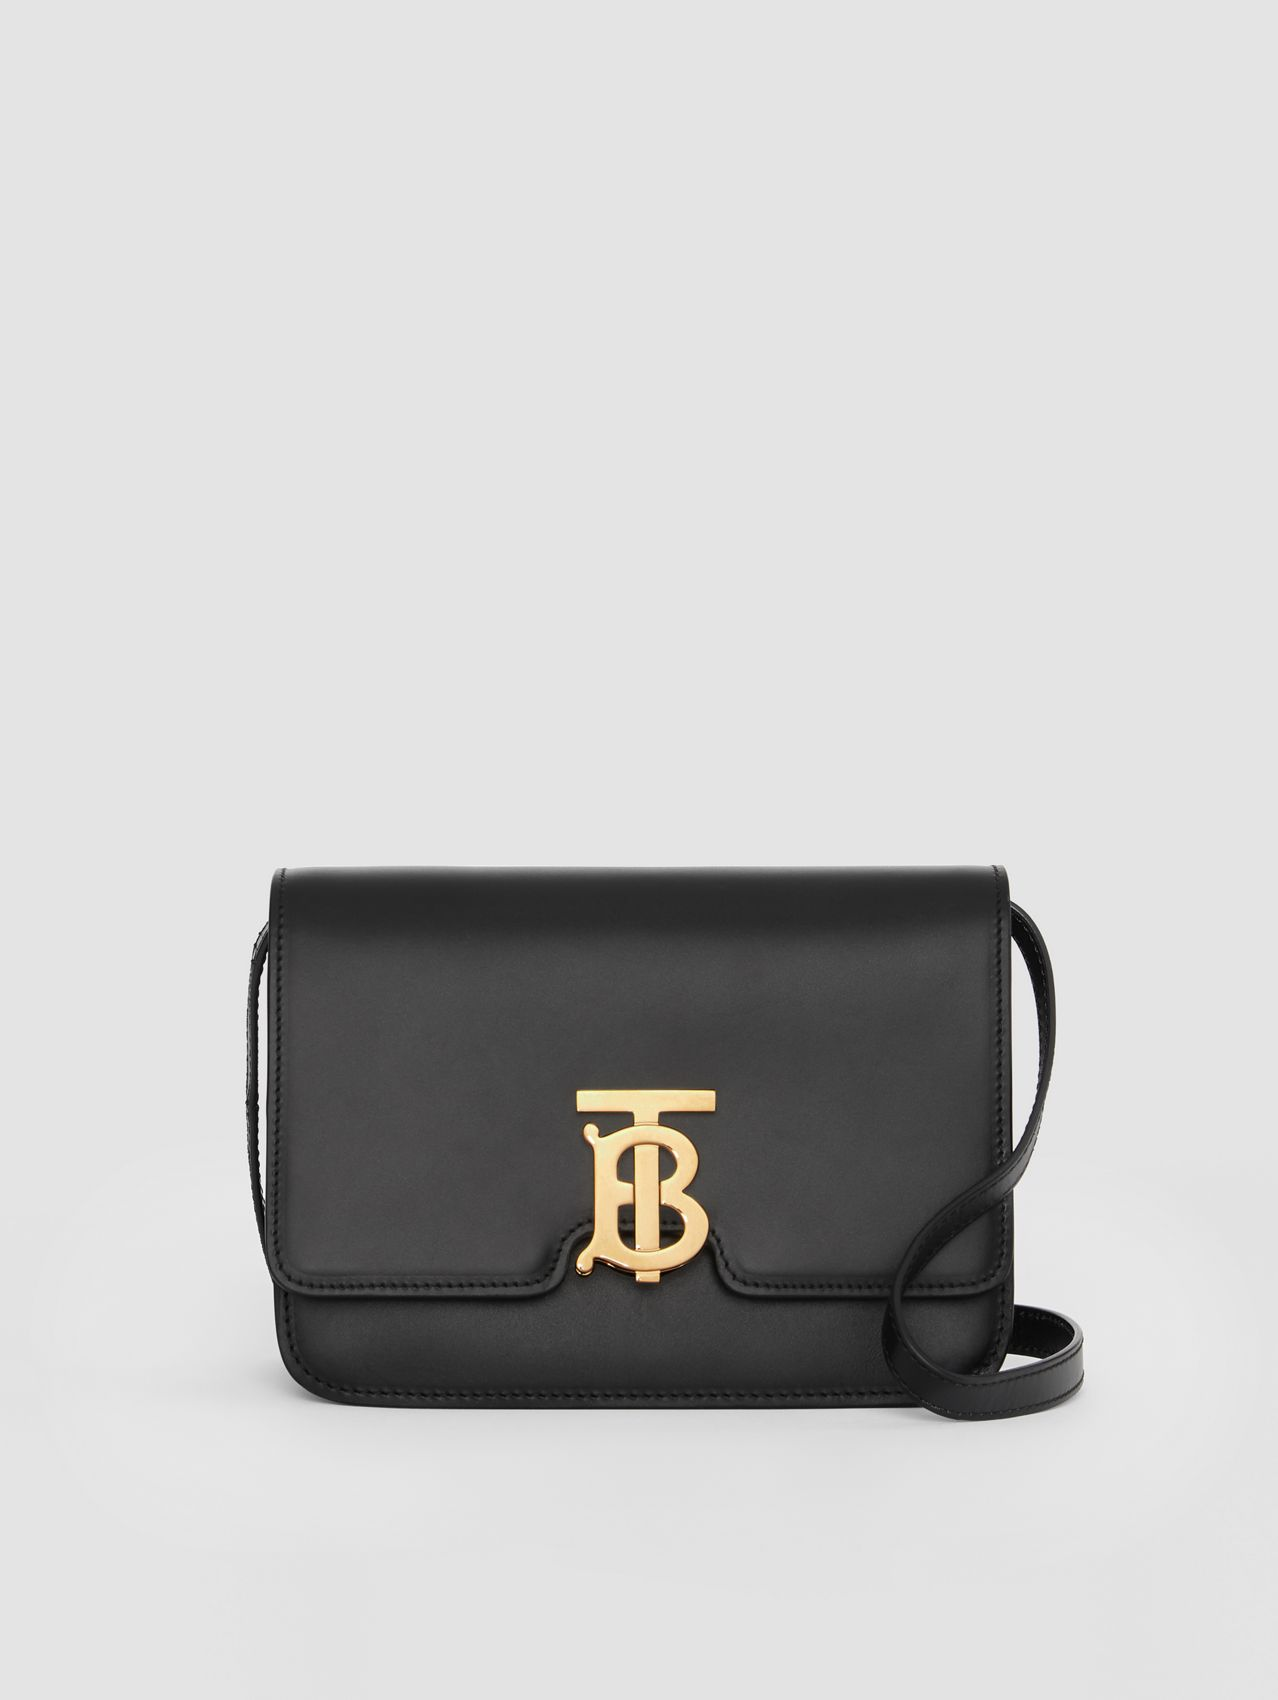 Small Leather TB Bag in Black